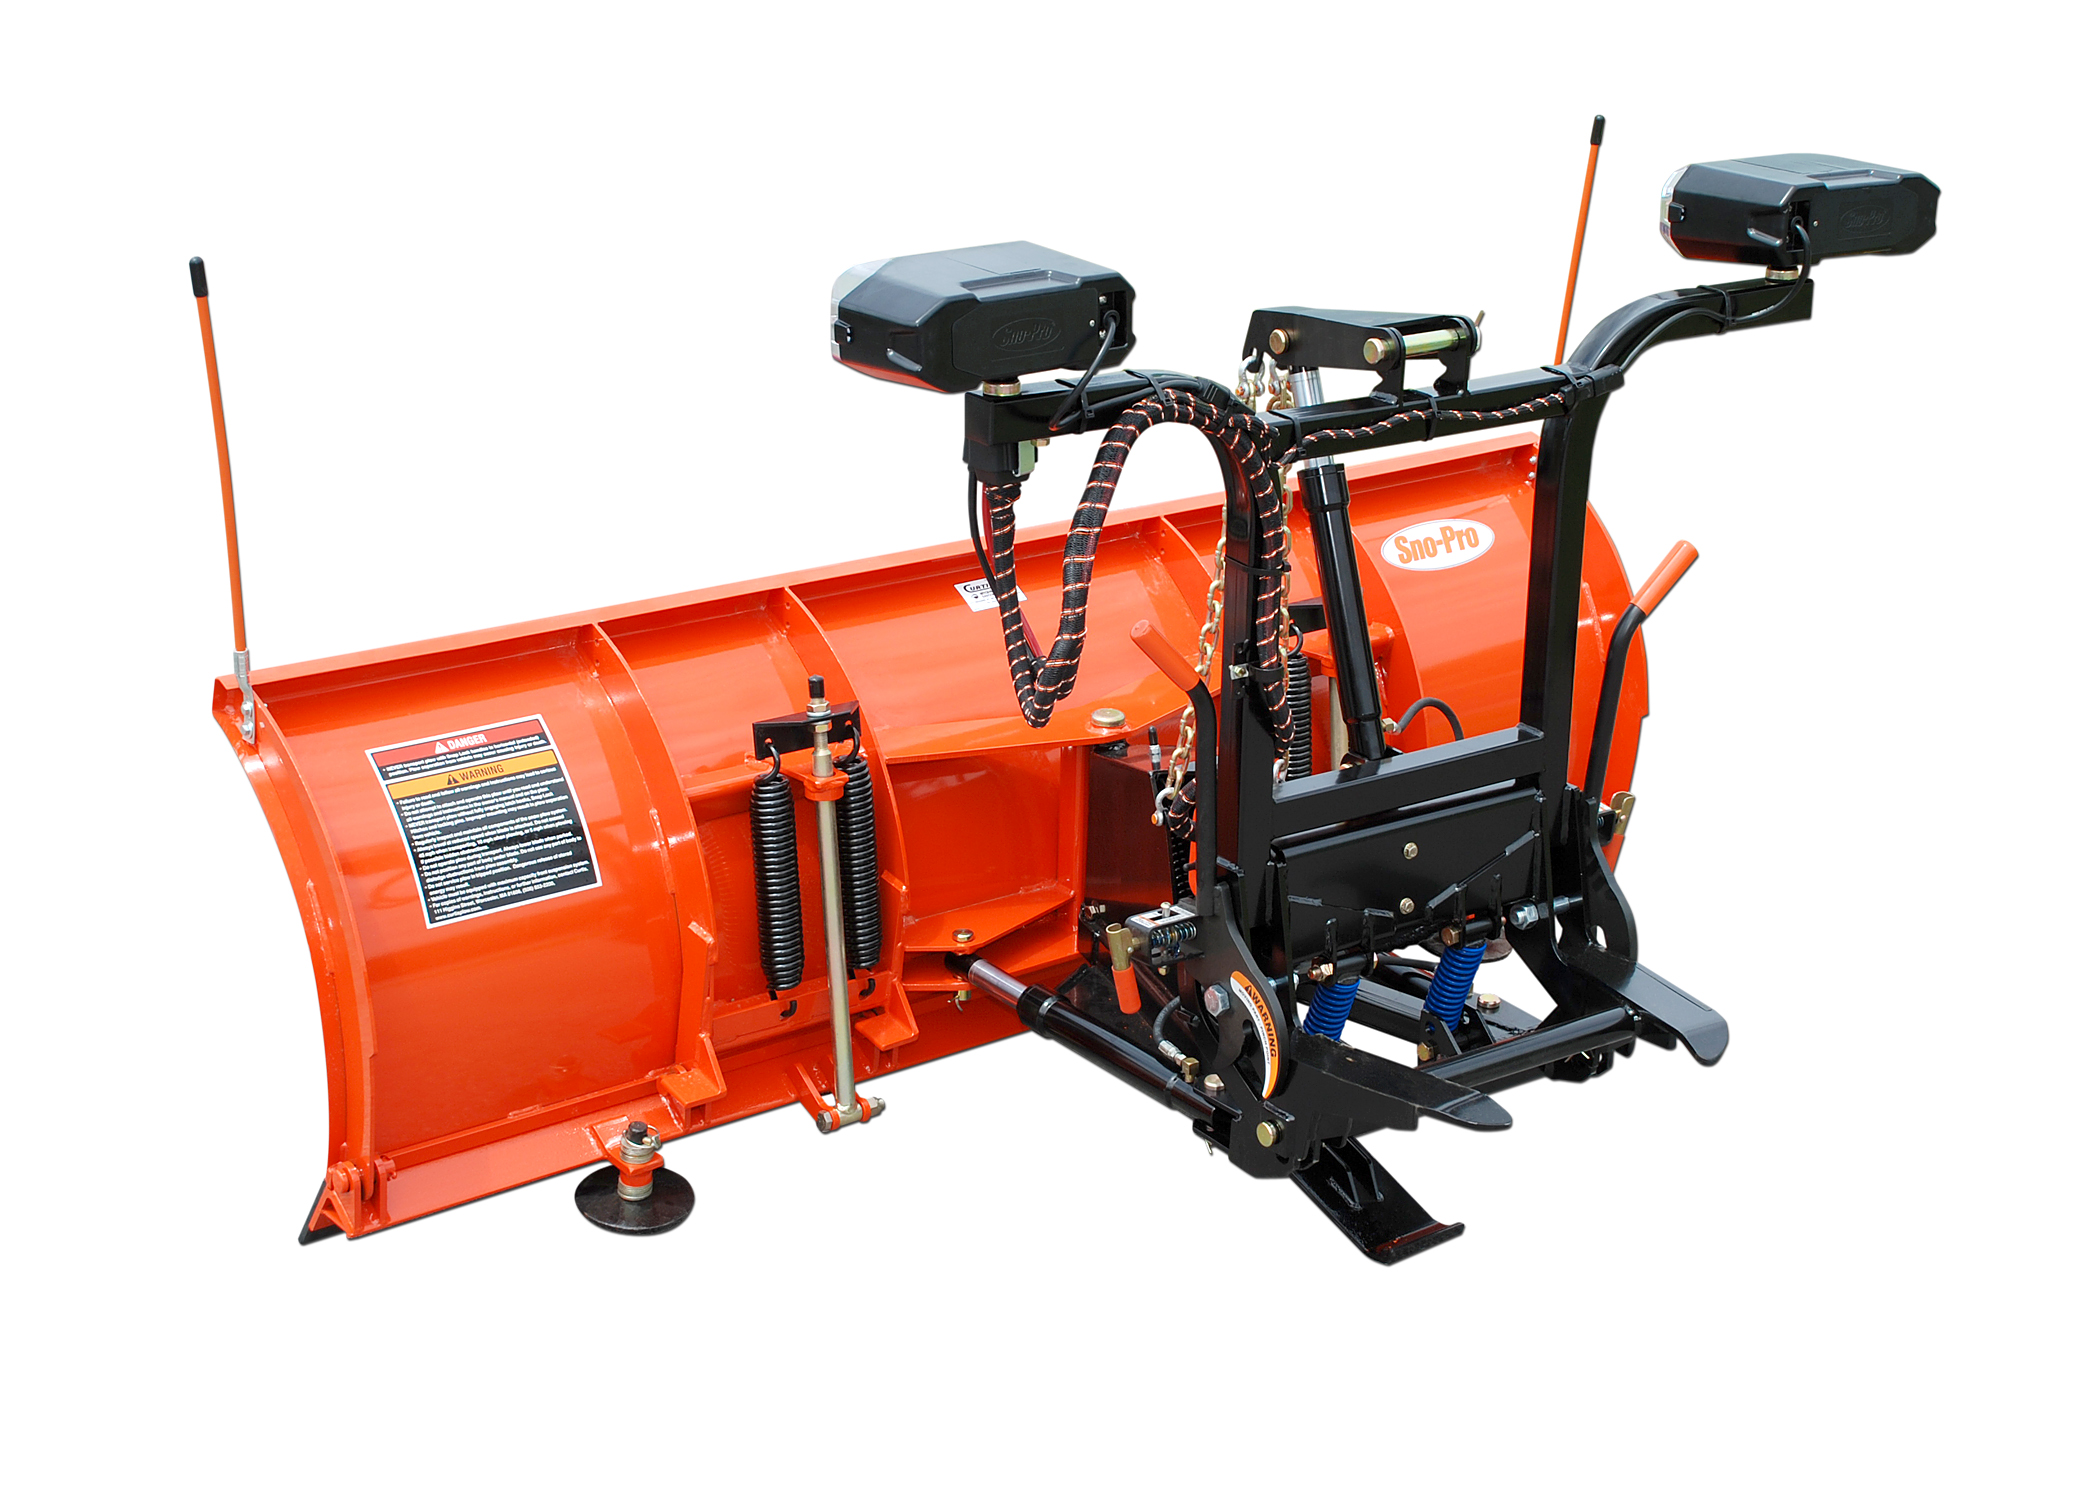 sno pro snow plows hide away mount clean and professional describes our remaining receiver frame when the plow is removed